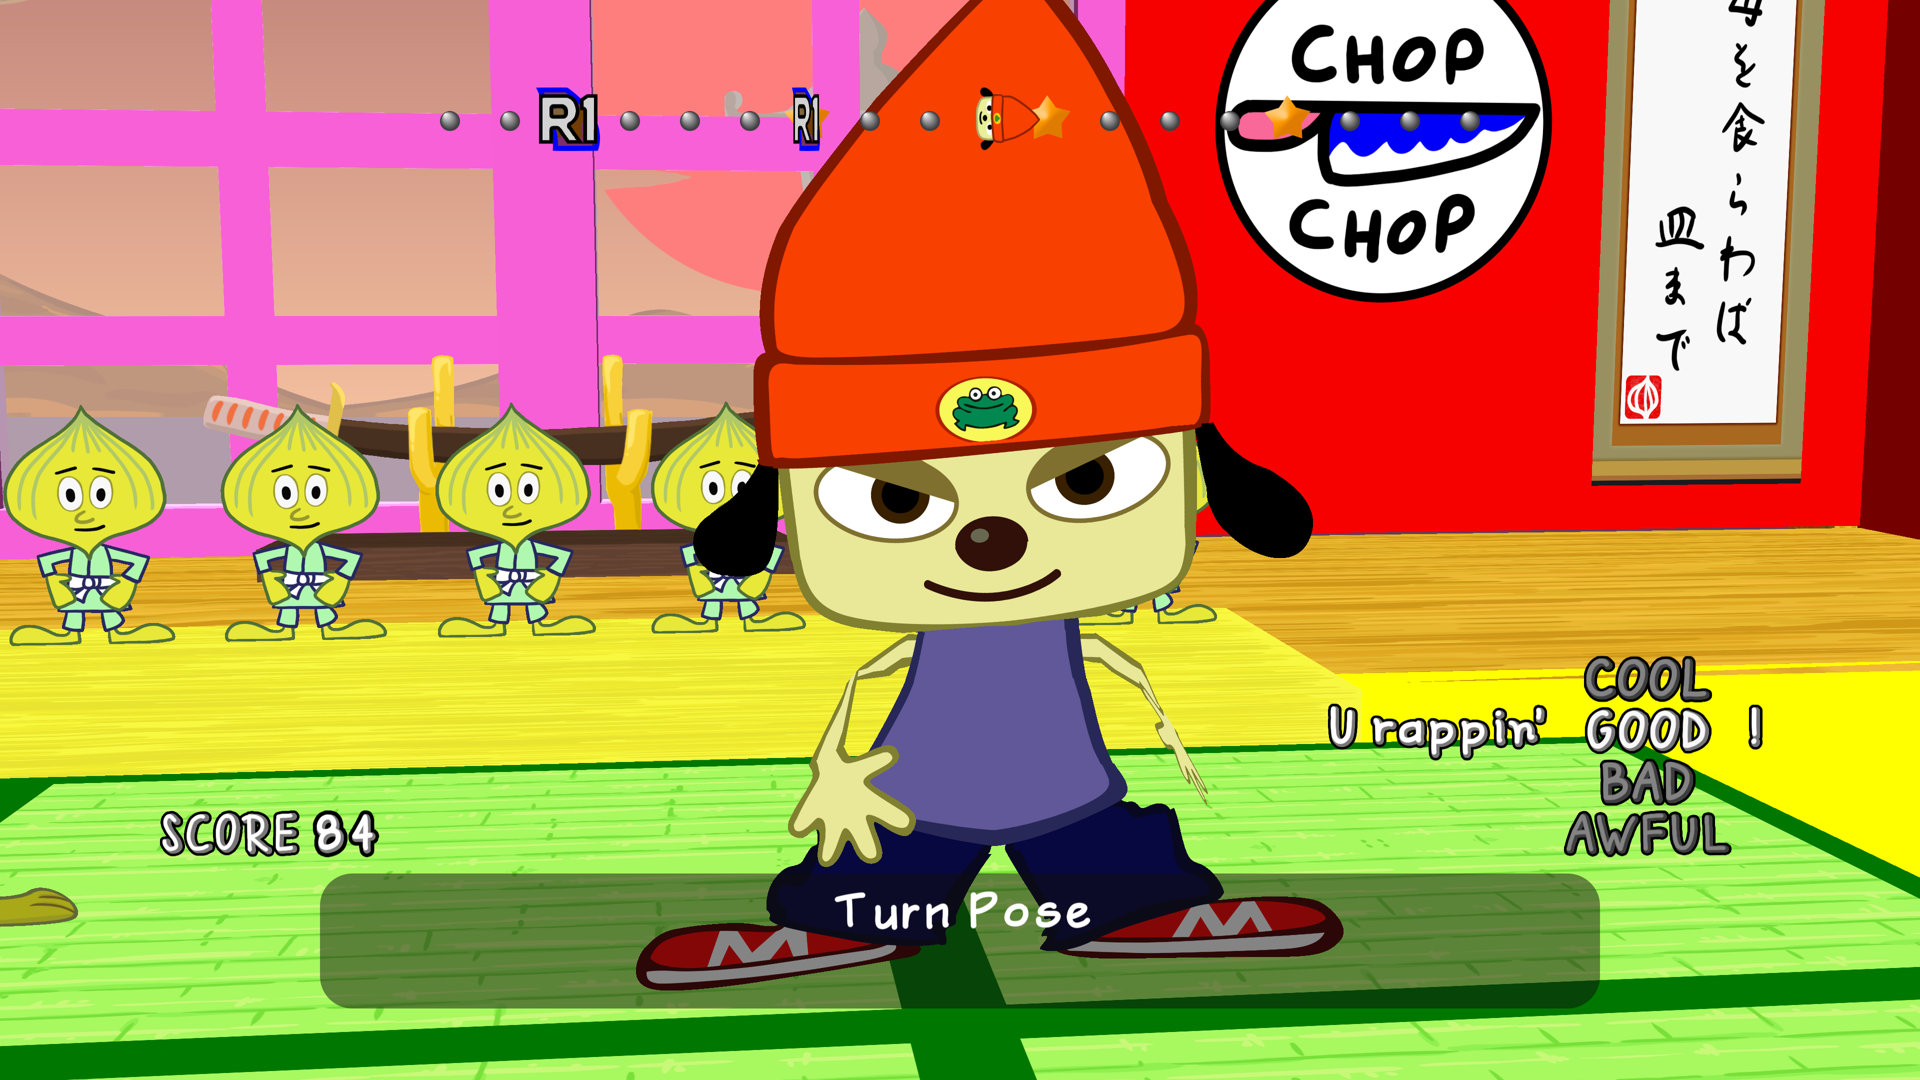 PaRappa the Rapper's legendary first stage with Chop Chop Master Onion